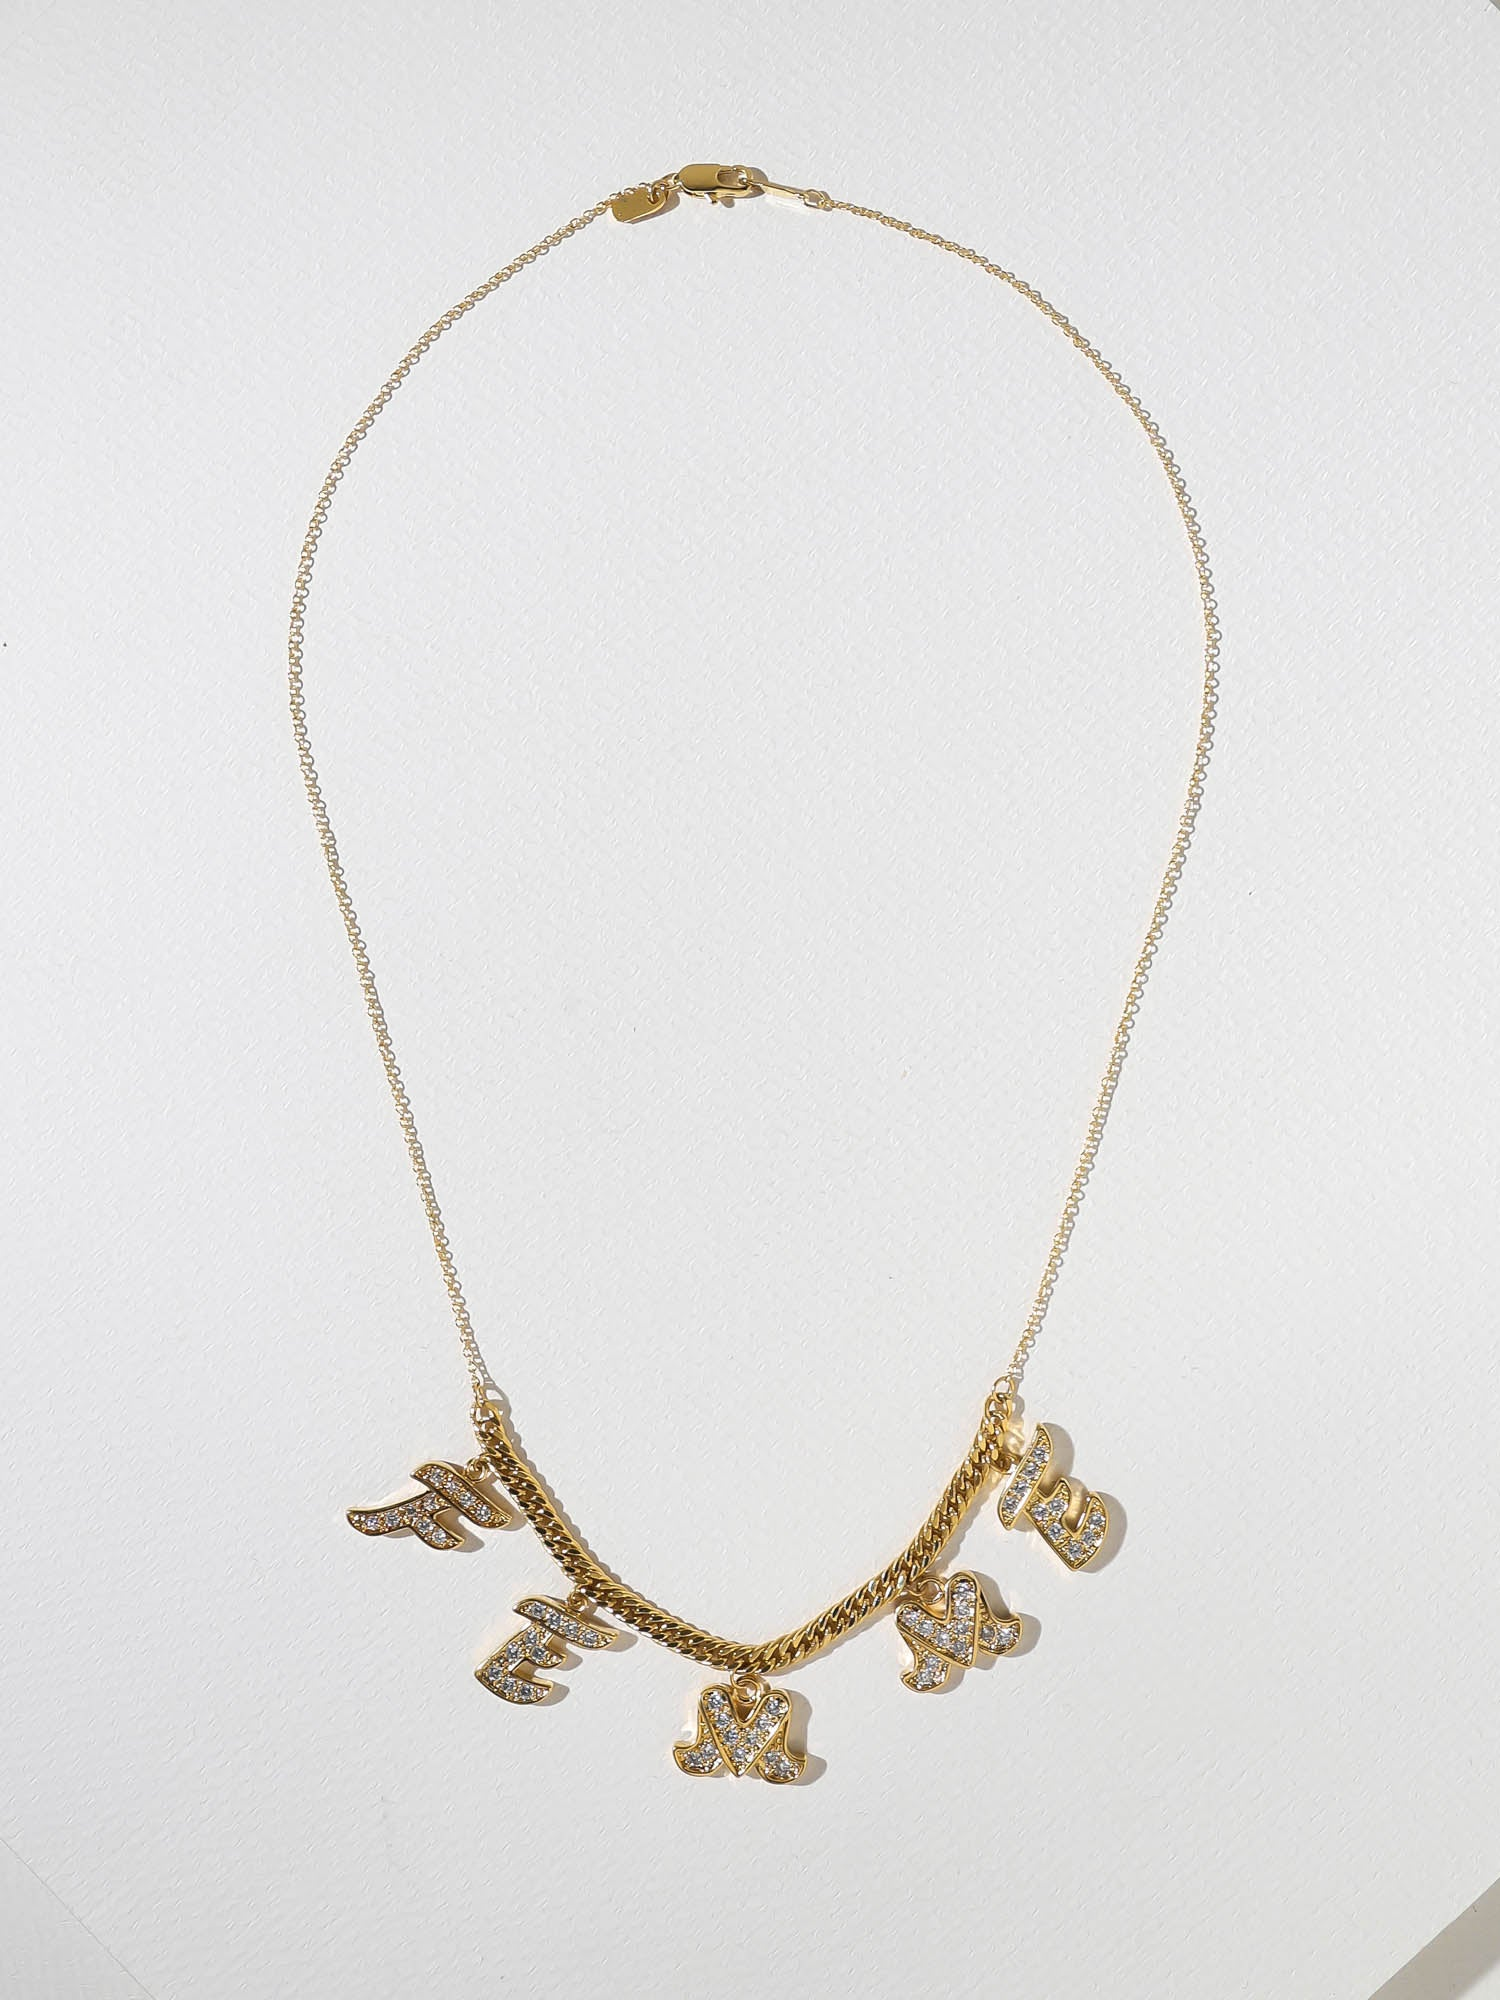 The Feminine Necklace